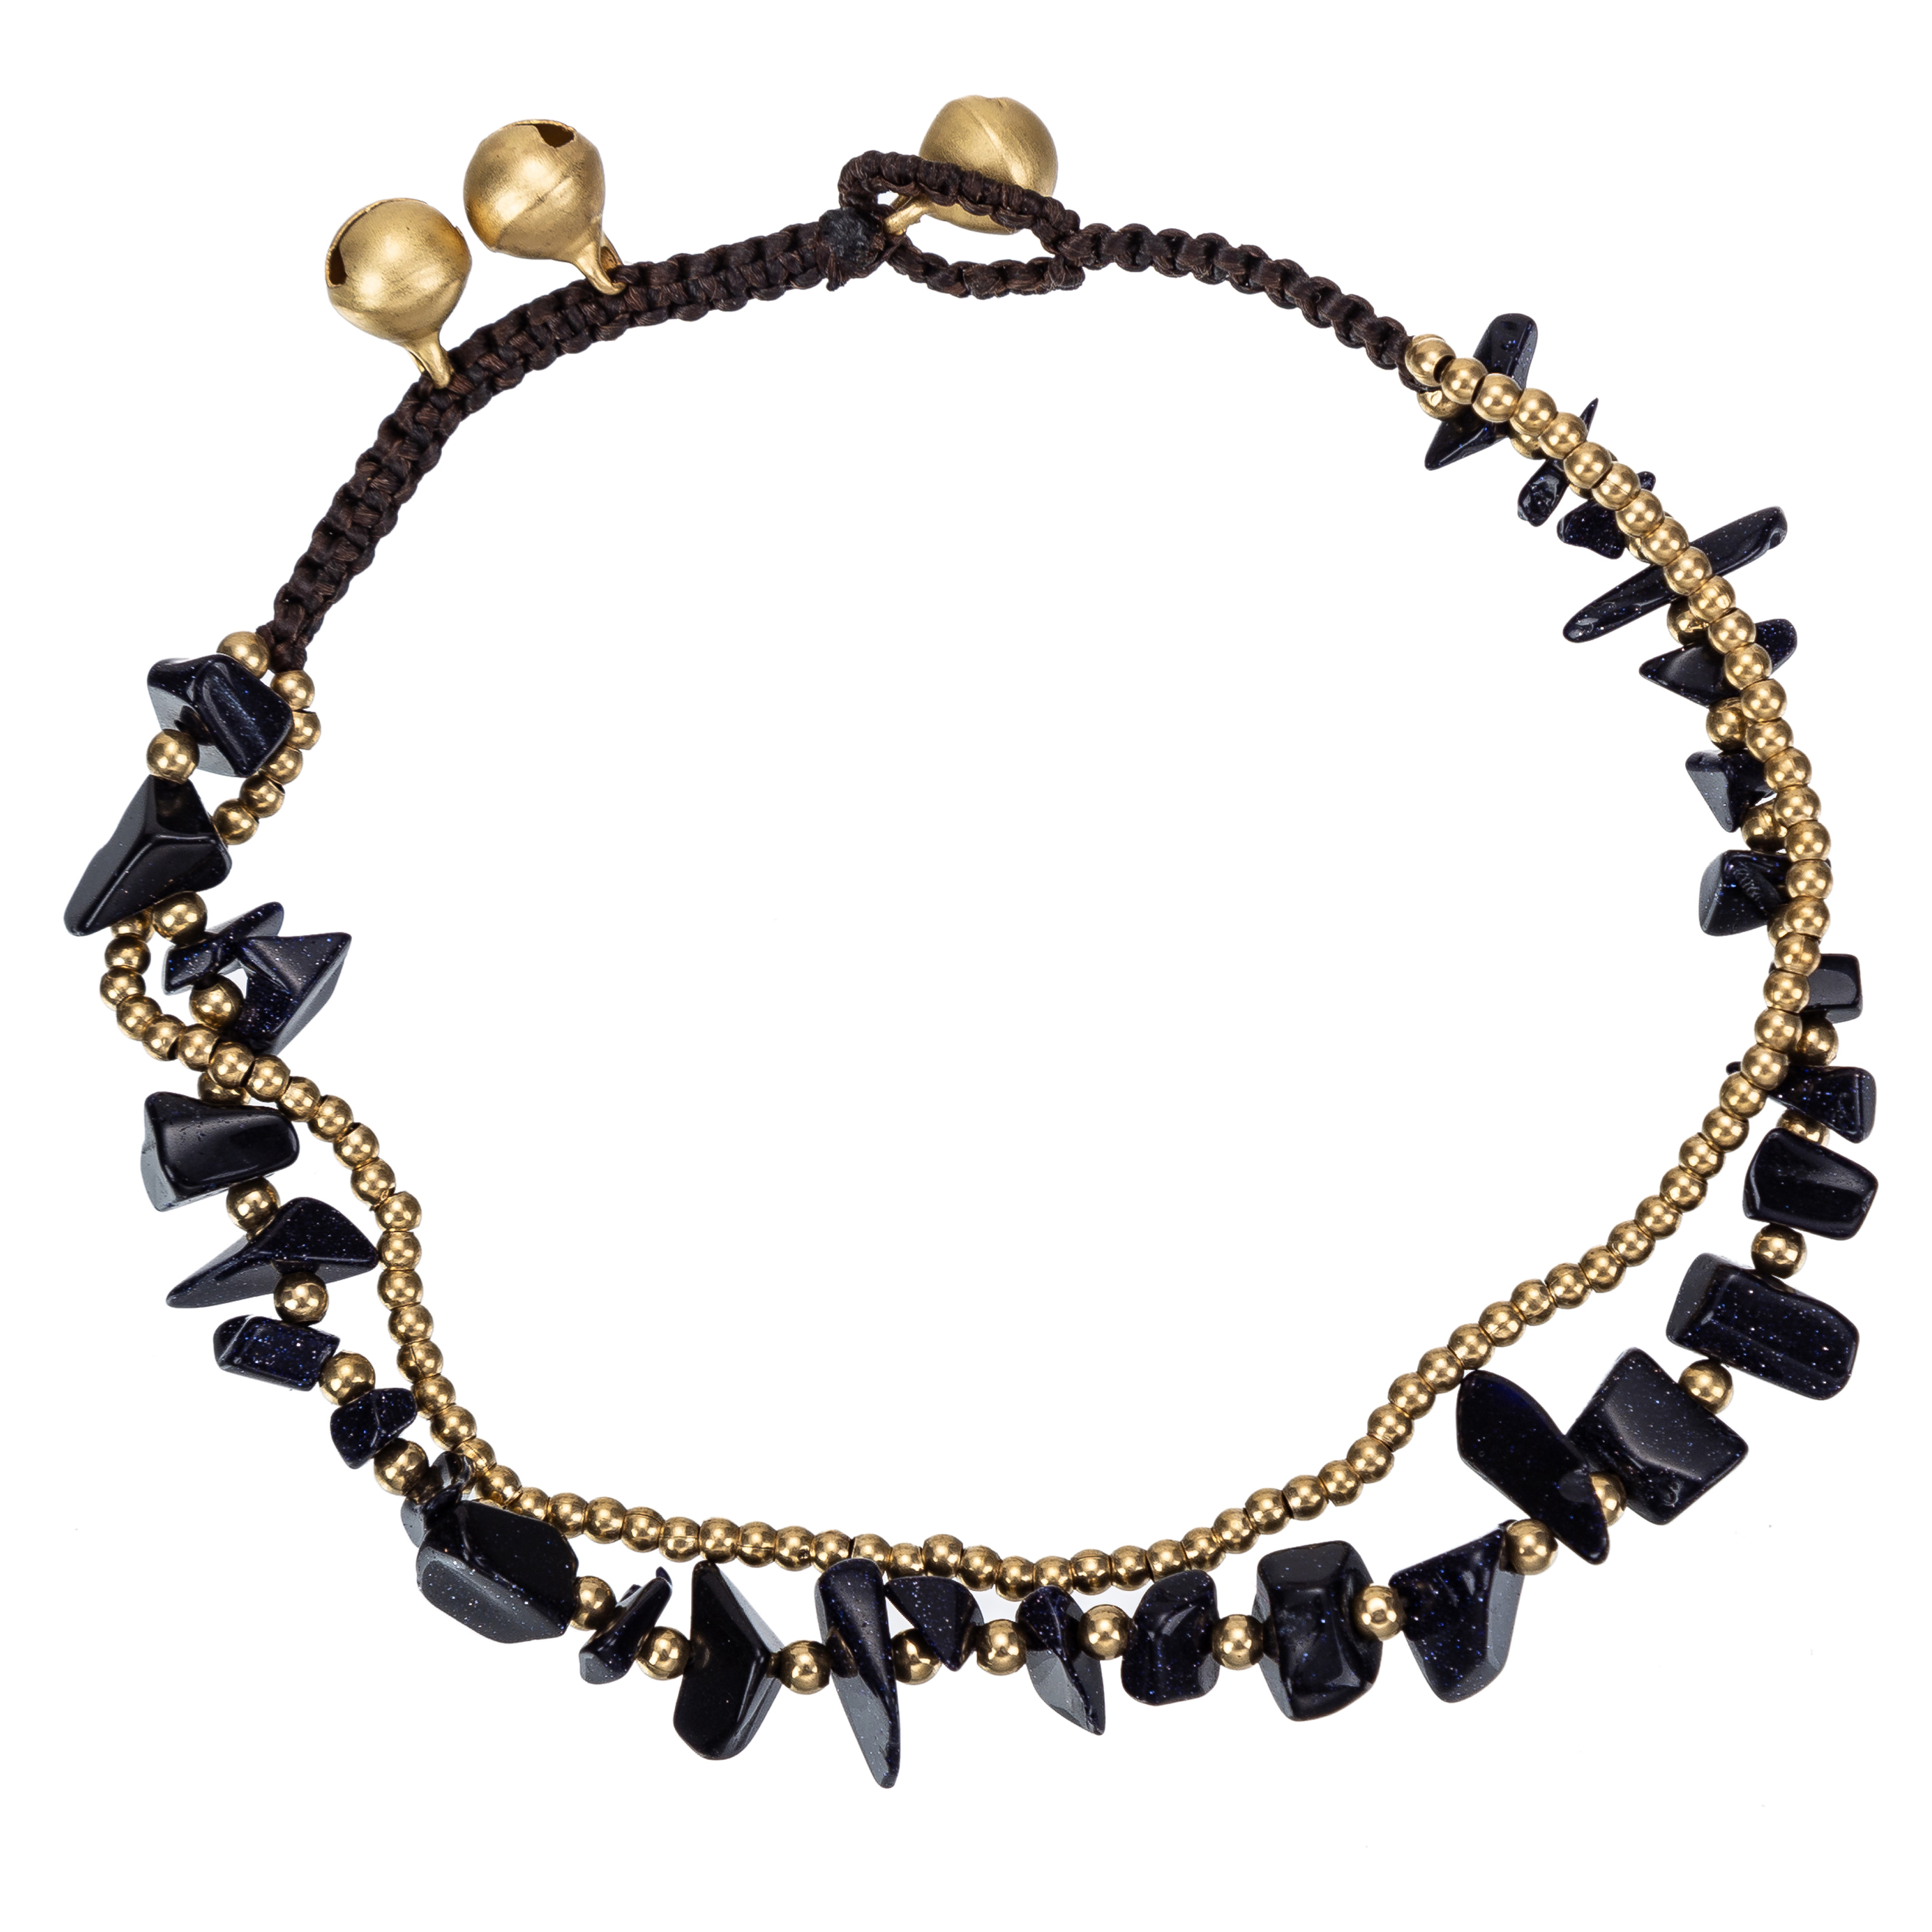 Vintage Natural Black Stones Link Chain Leg Anklets For Women Ankle Bracelet Woman Anklet Female Foot Jewelry